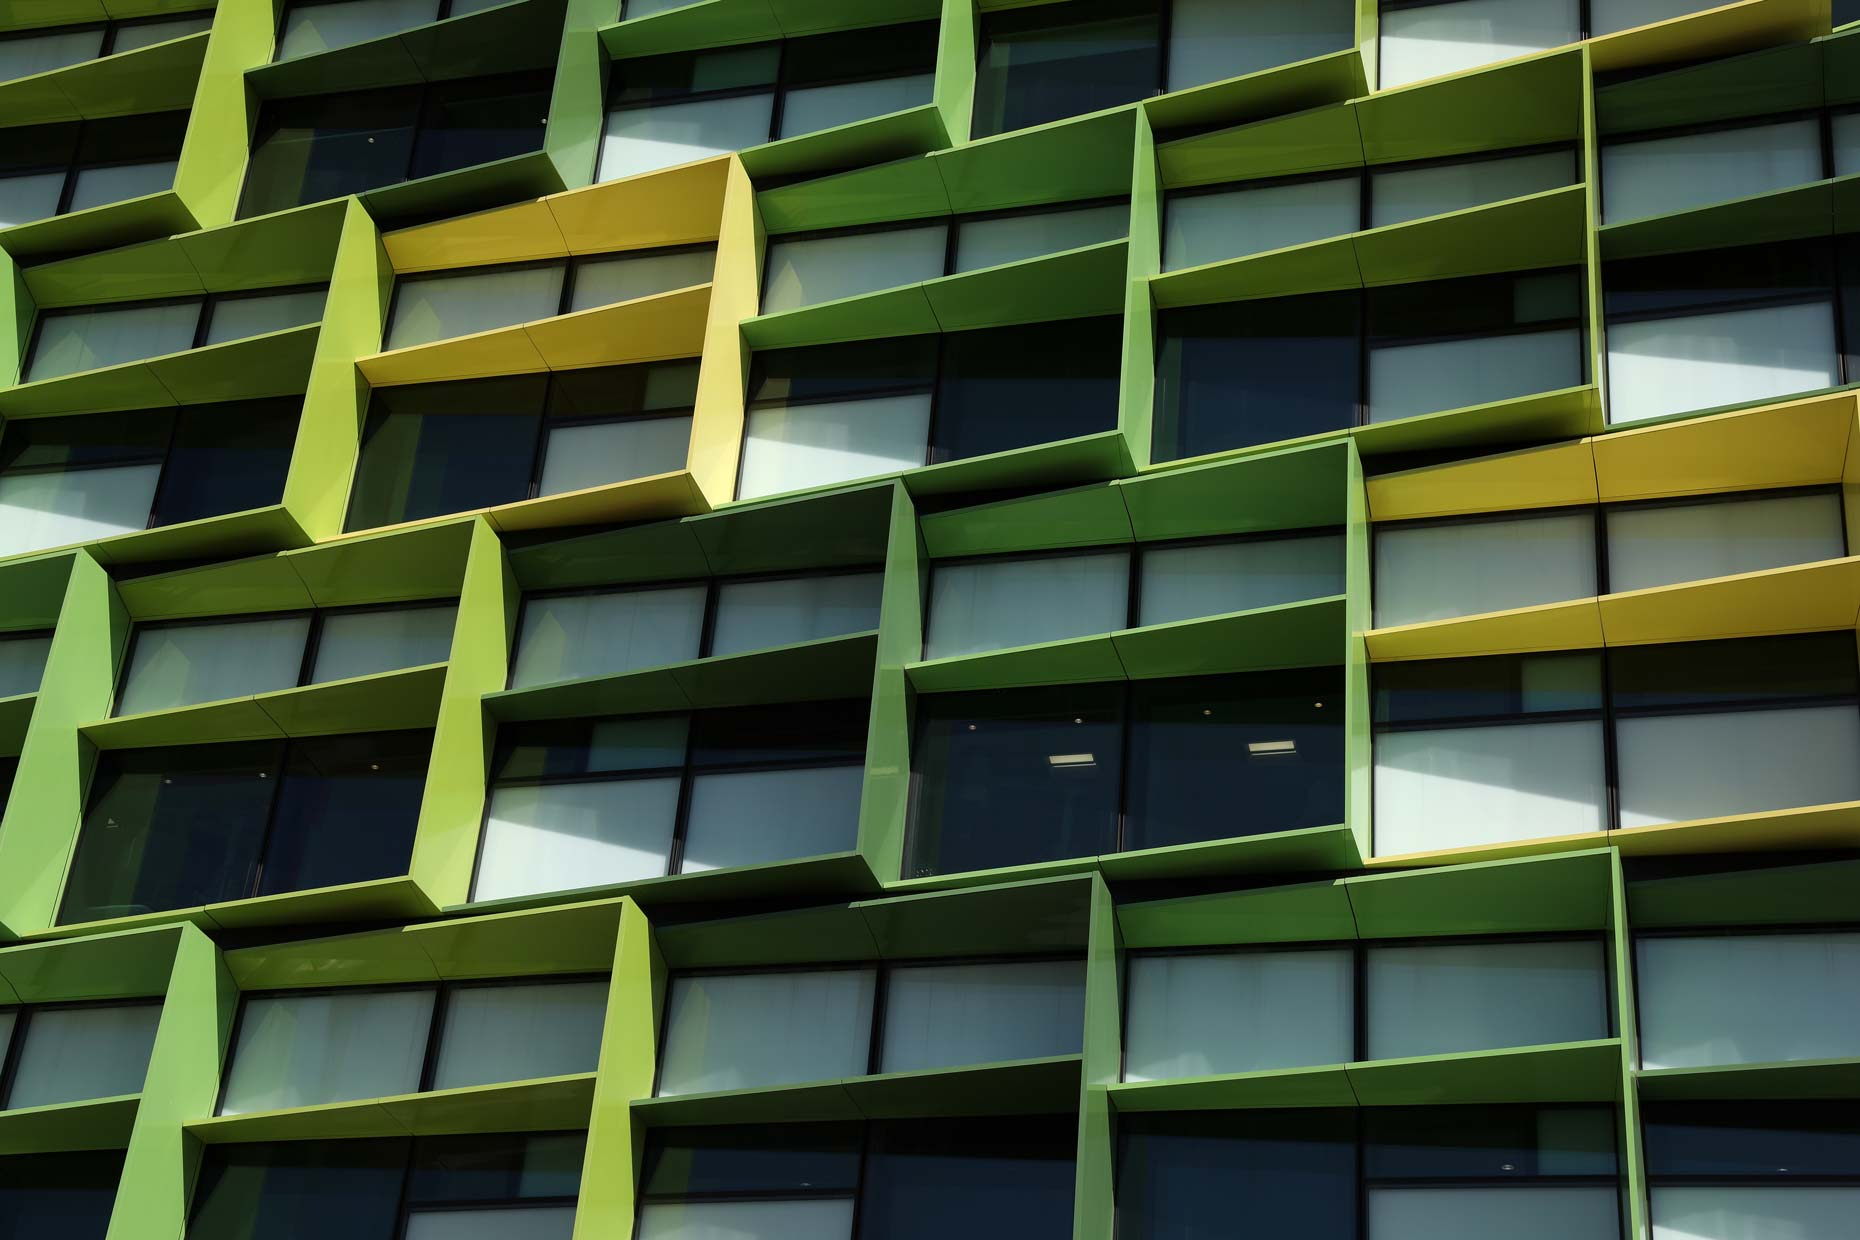 perth-childrens-hospital-facade